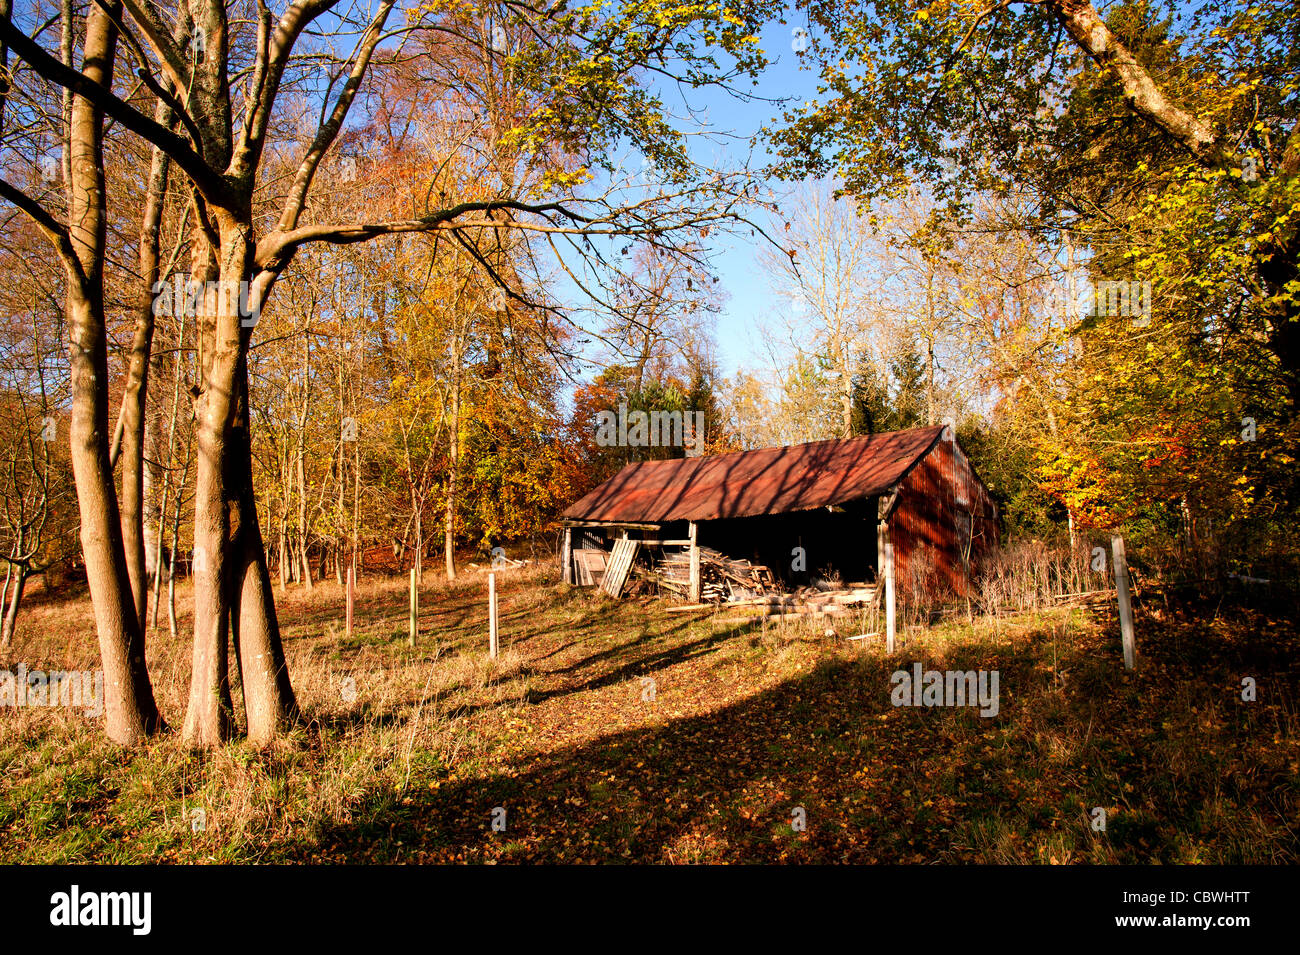 Barn at Fawley, Henley-on-Thames, in Chilterns beech wood. - Stock Image